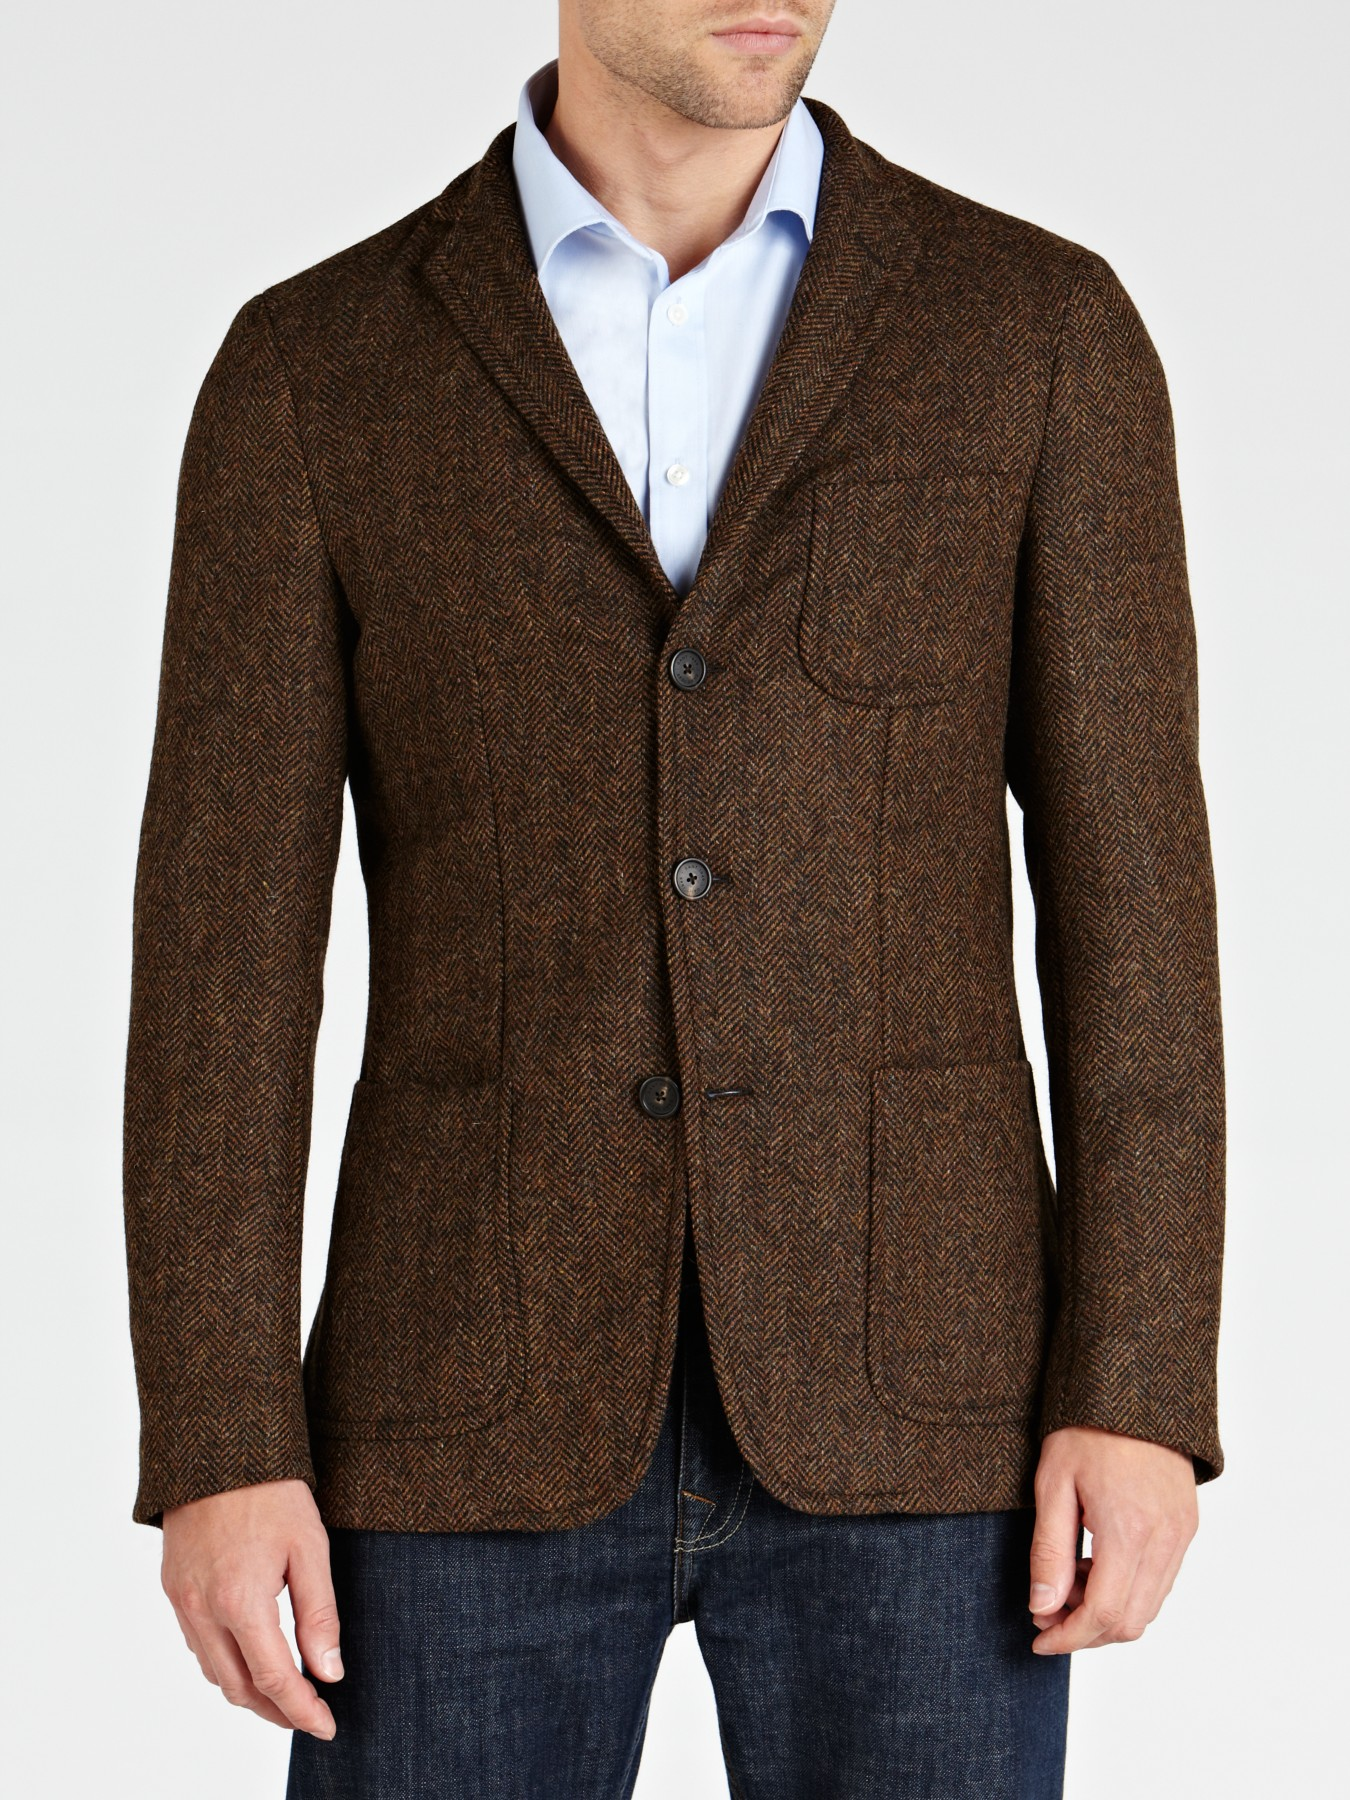 This version of the Ludlow blazer (first launched in ) is made of herringbone wool woven by England's Abraham Moon (considered one of the finest mills in the world).